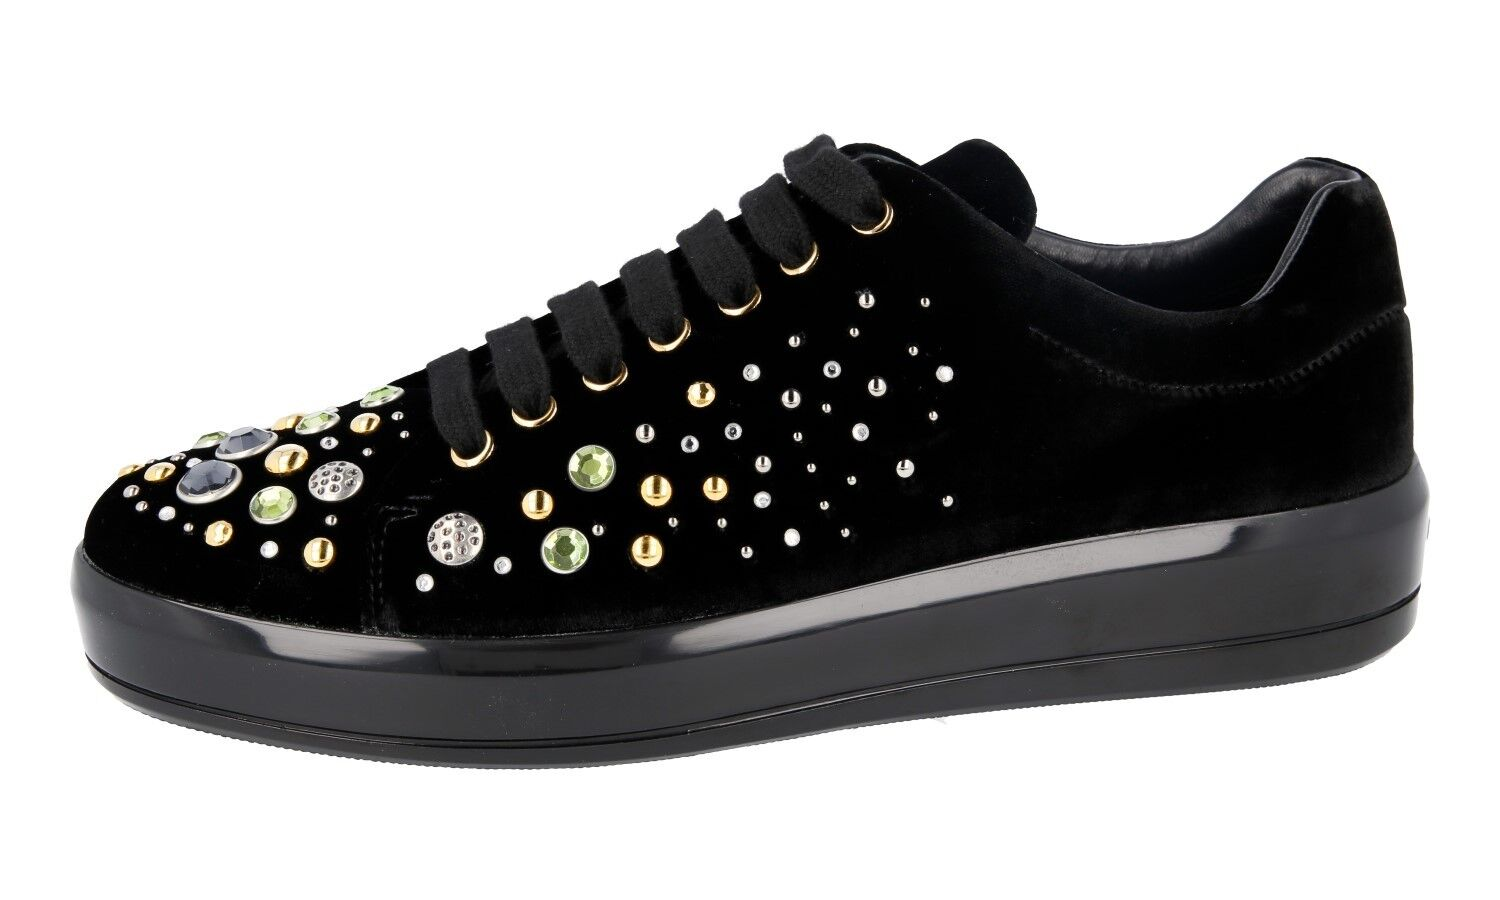 FANCY PRADA VELVET SNEAKERS BLACK SHOES 1E971H RHINESTONE 40 40 40 40,5 UK 7 67ee2d